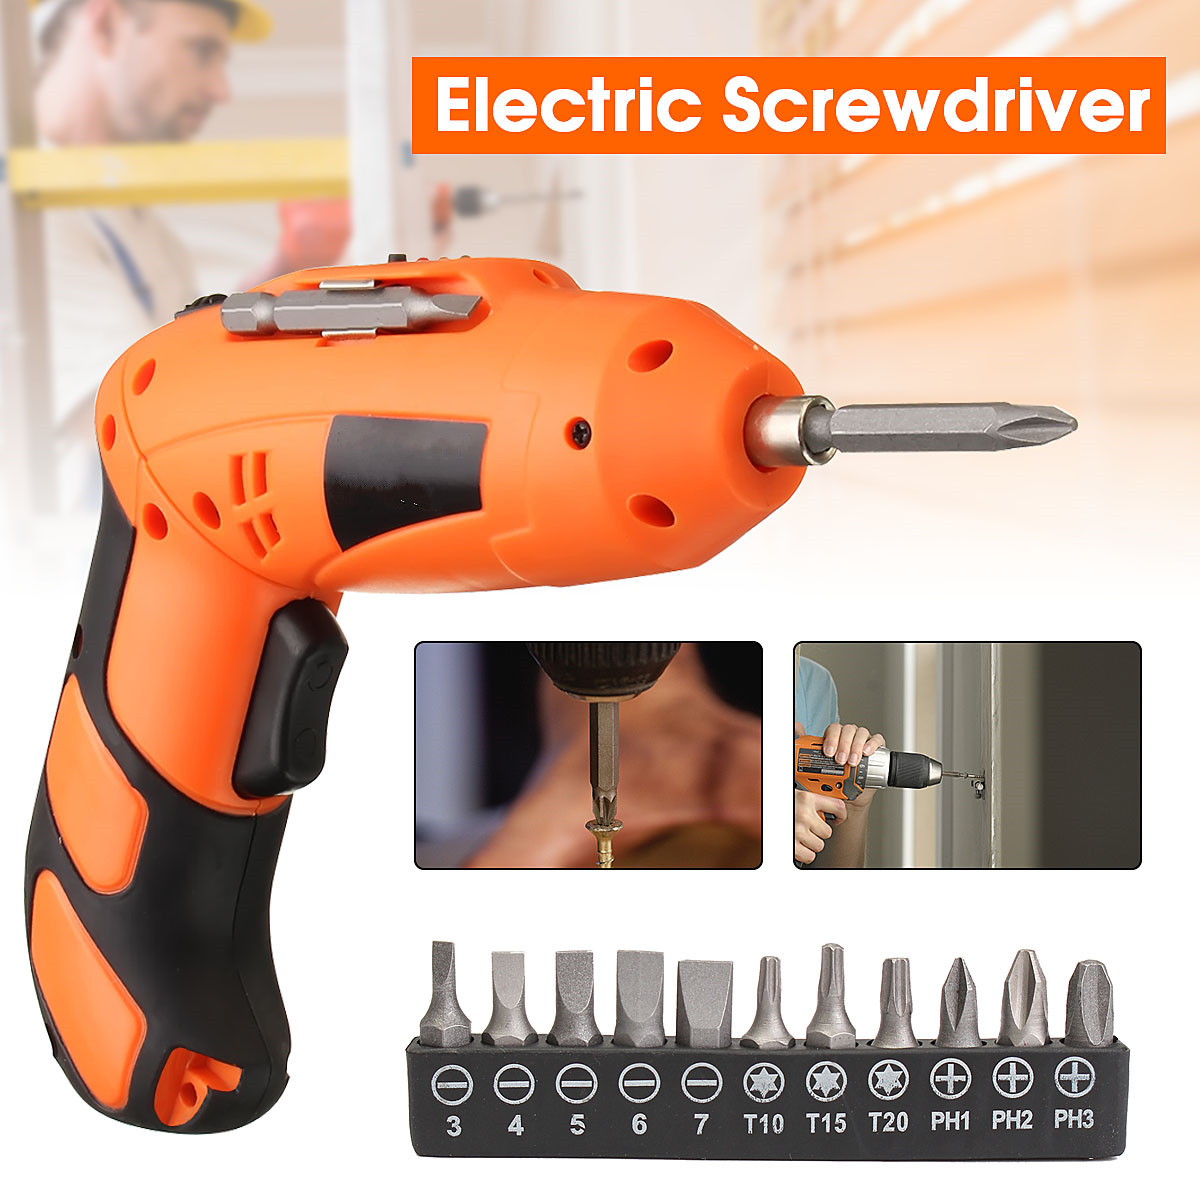 Electric Screwdriver Mini Chargeable Electric Cordless Screwdriver +Drill Shank Star Hex Screwdriver Bit set +Magnetic Bit Holder